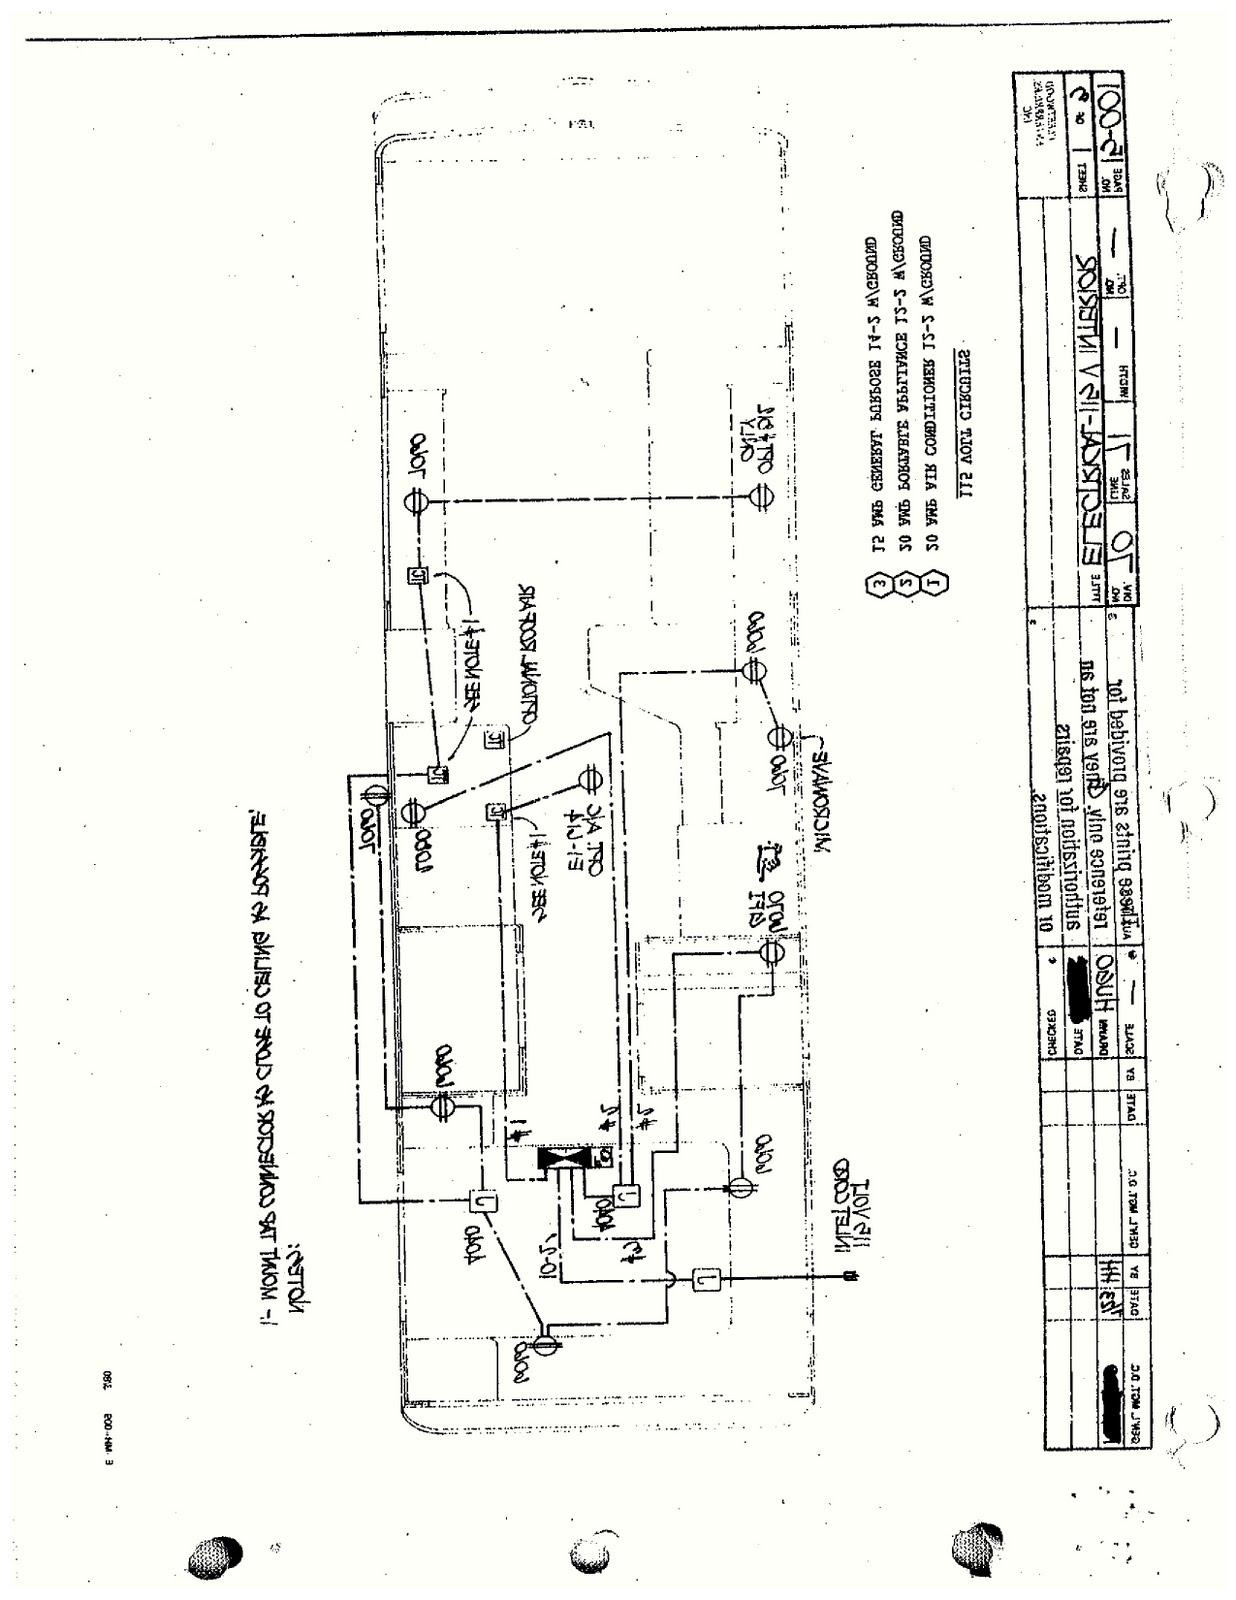 fleetwood prowler rv wiring diagram